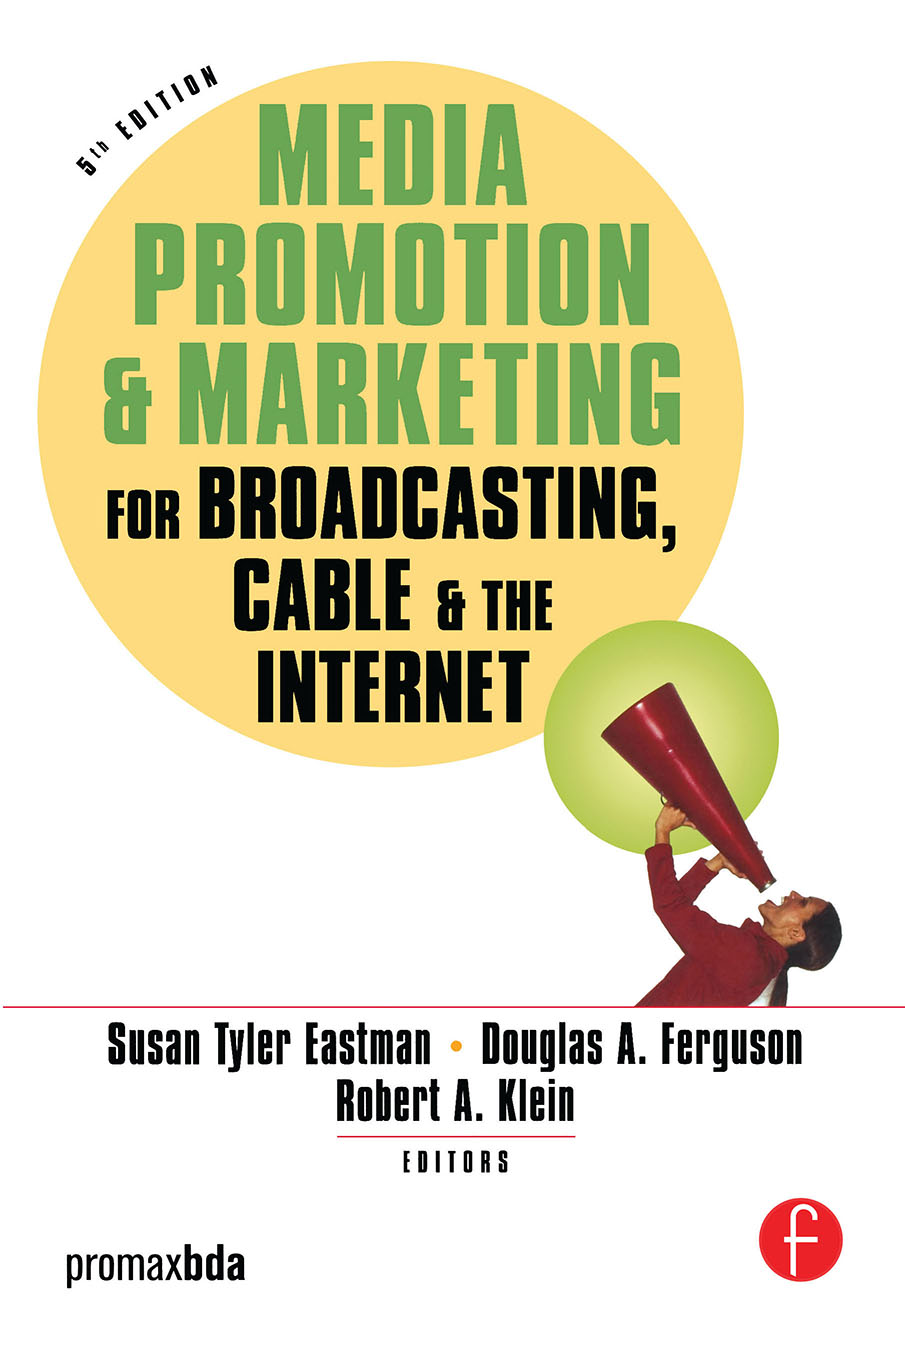 Download Ebook Media Promotion & Marketing for Broadcasting, Cable & the Internet (5th ed.) by Susan Tyler Eastman Pdf